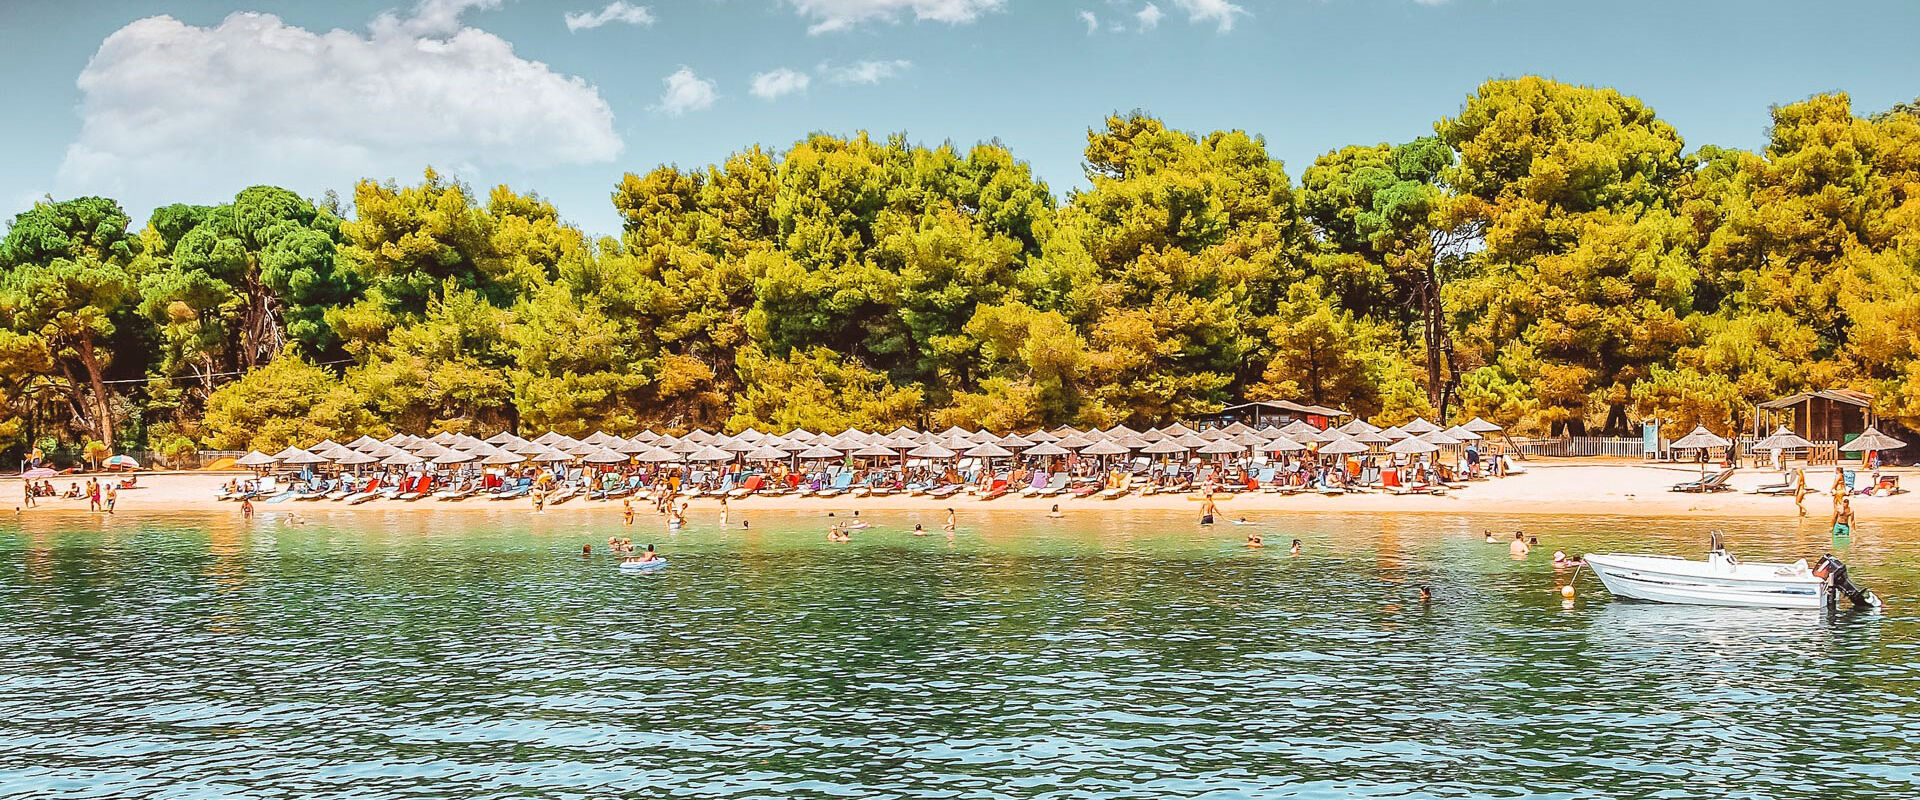 Koukounaries has been winning over the hearts of visitors to Skiathos for decades